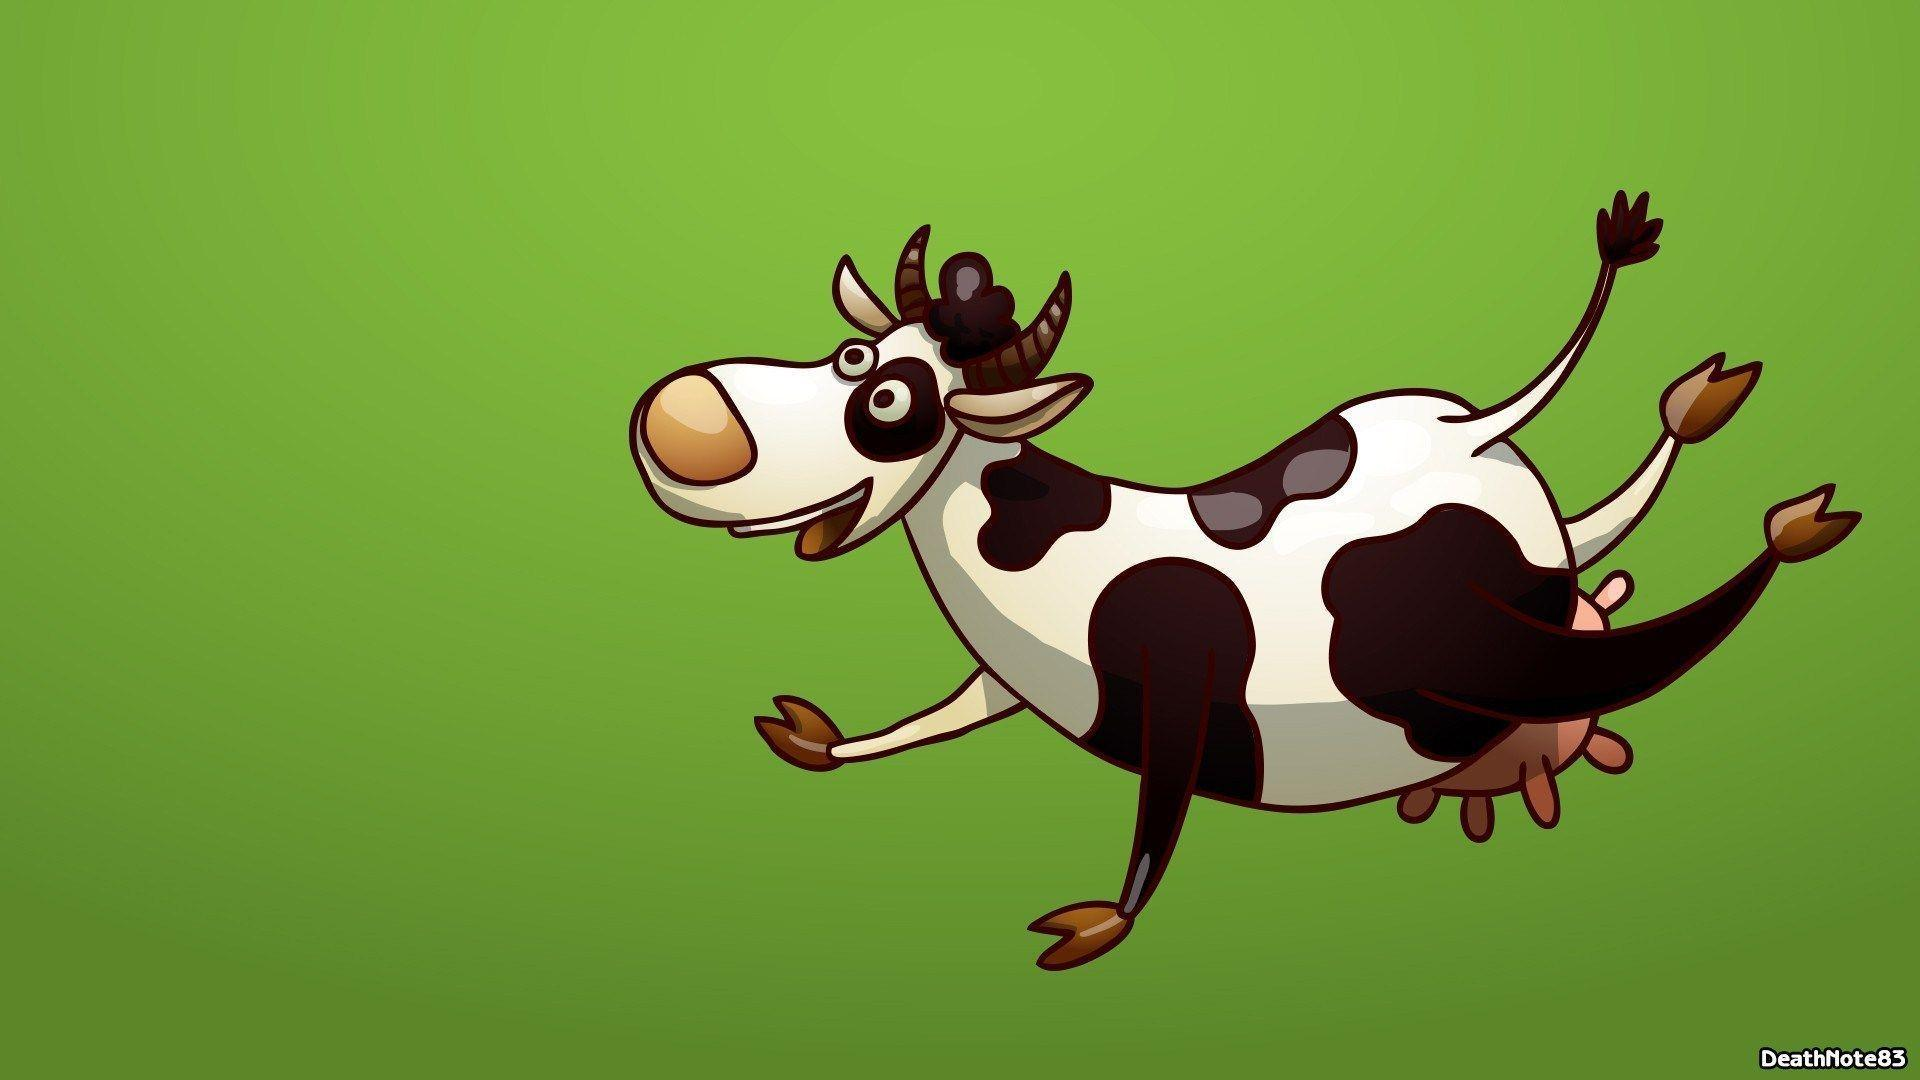 Funny Cow Wallpapers - Wallpaper Cave